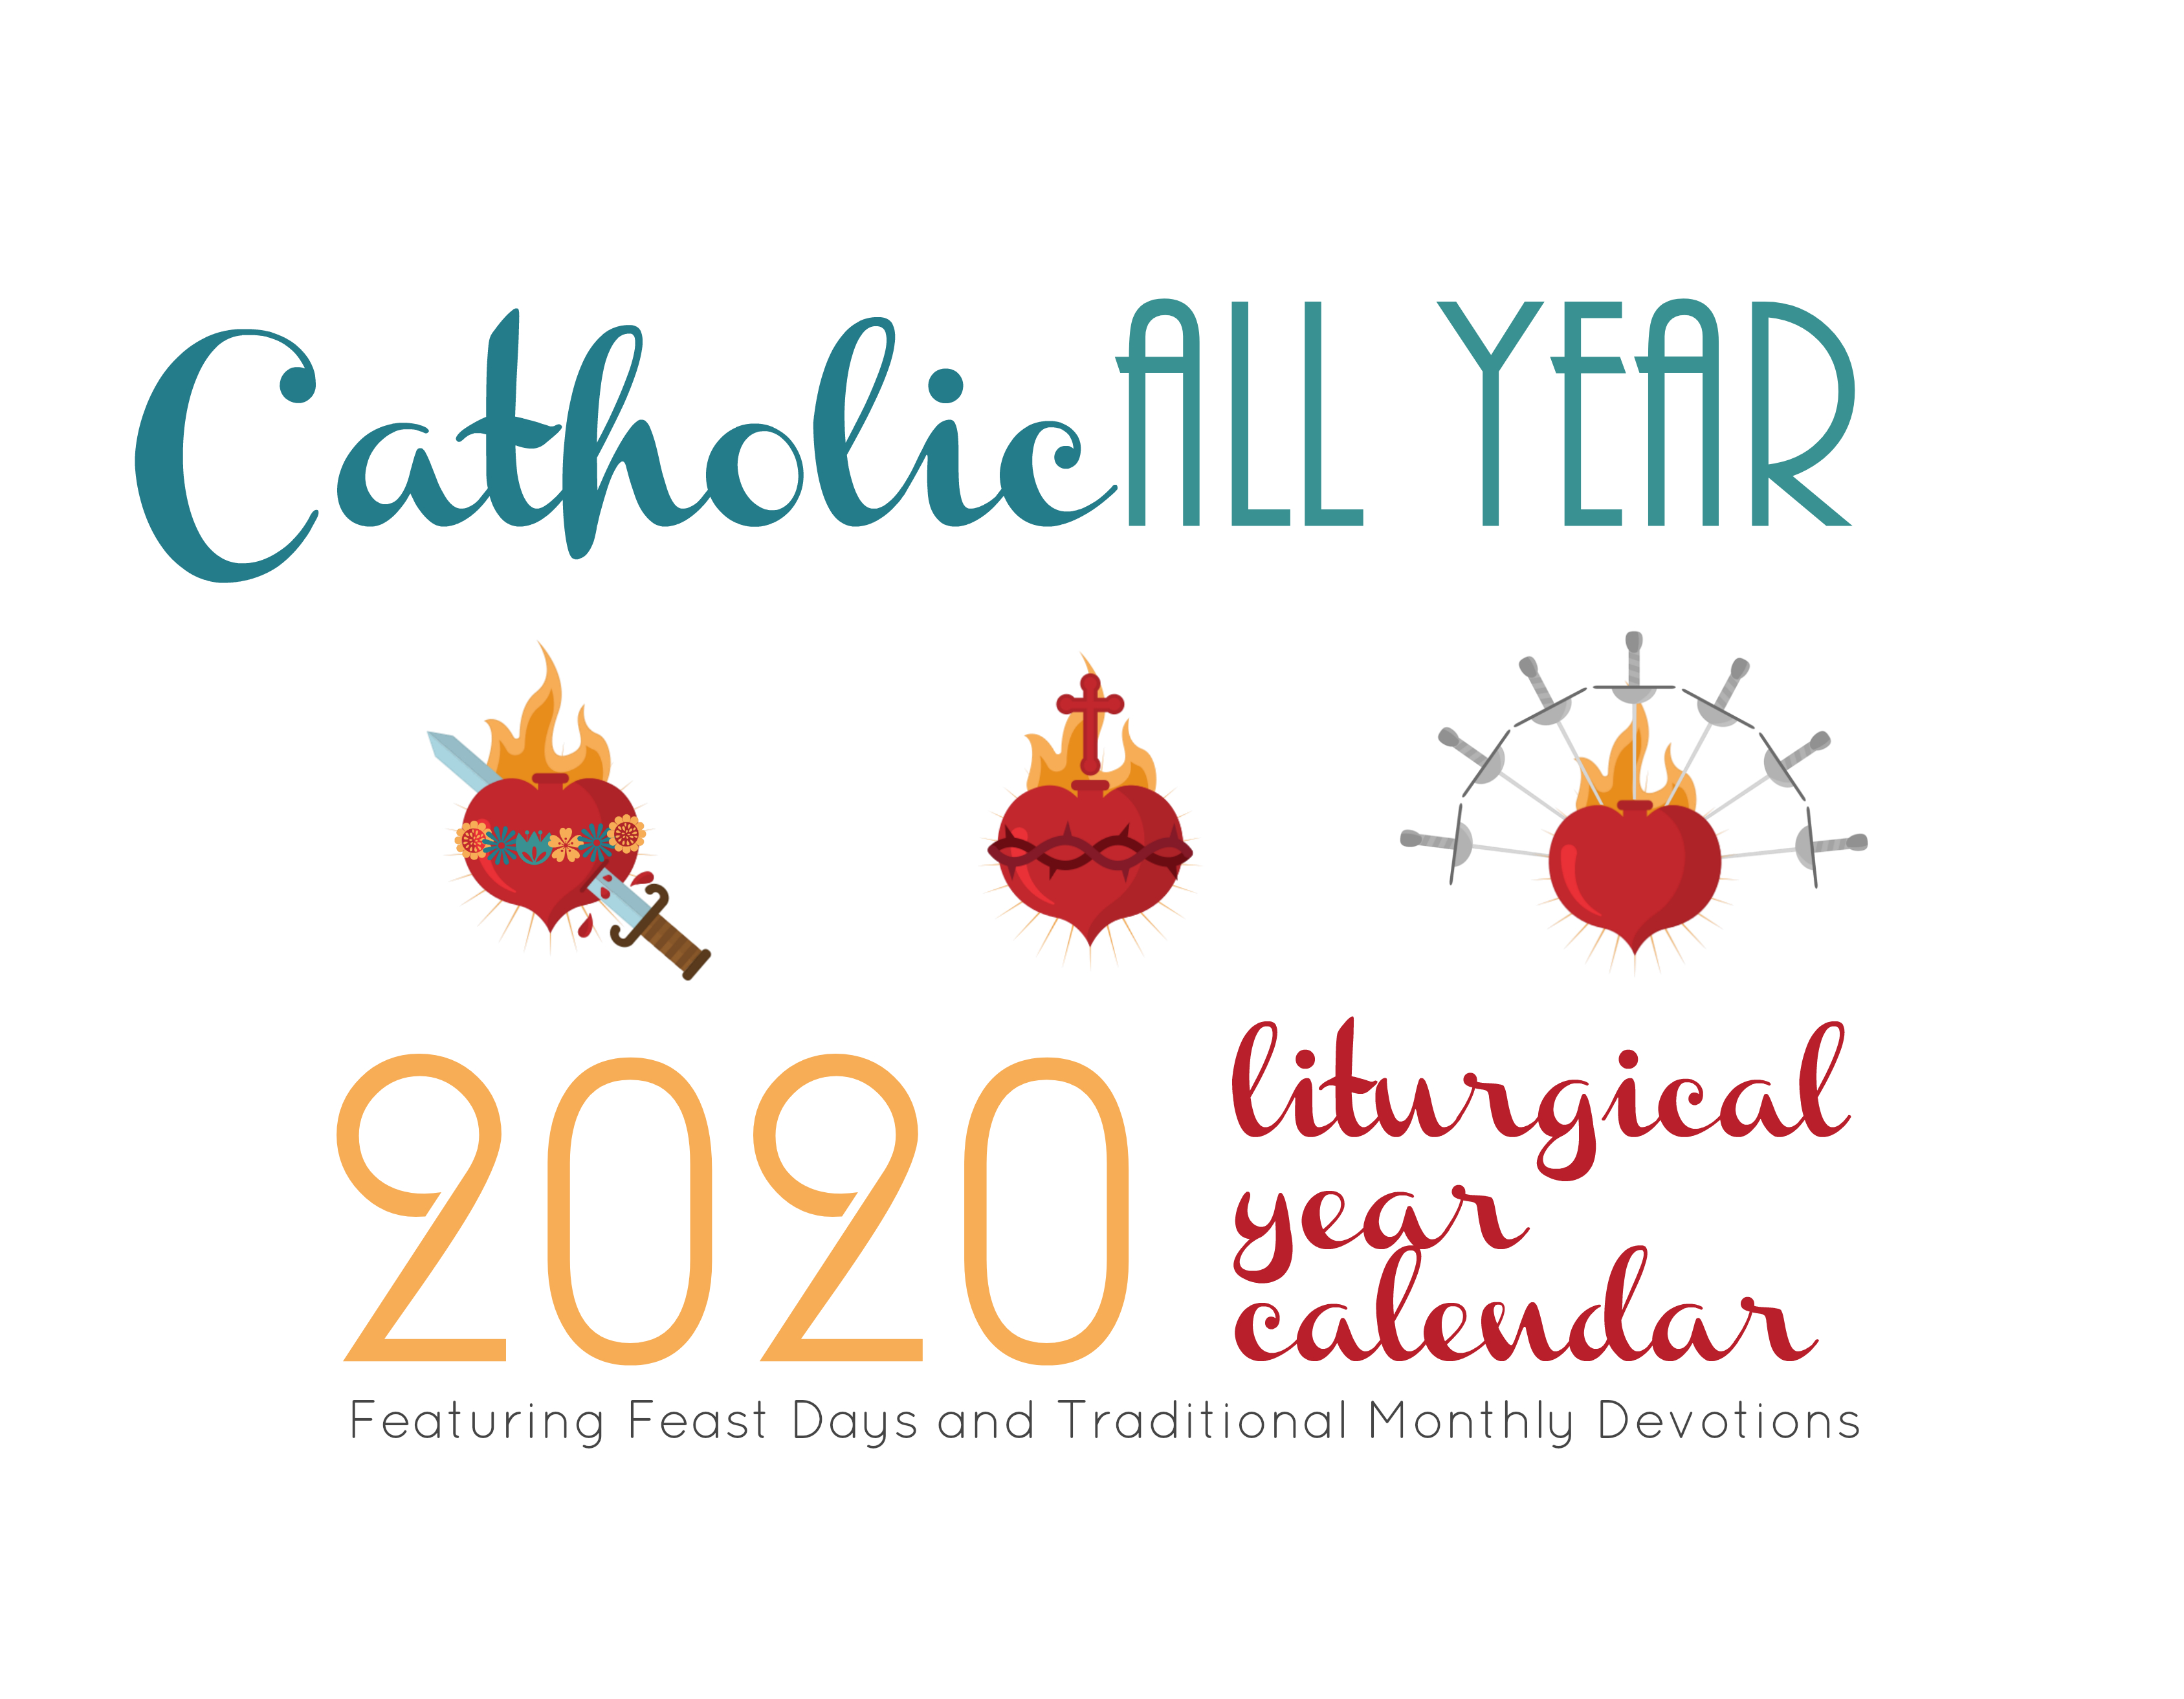 Catholic All Year 2020 Monthly Devotions Liturgical Year Calendar *digital  Download* regarding Printable Monthly Liiturgical Calendar 2020